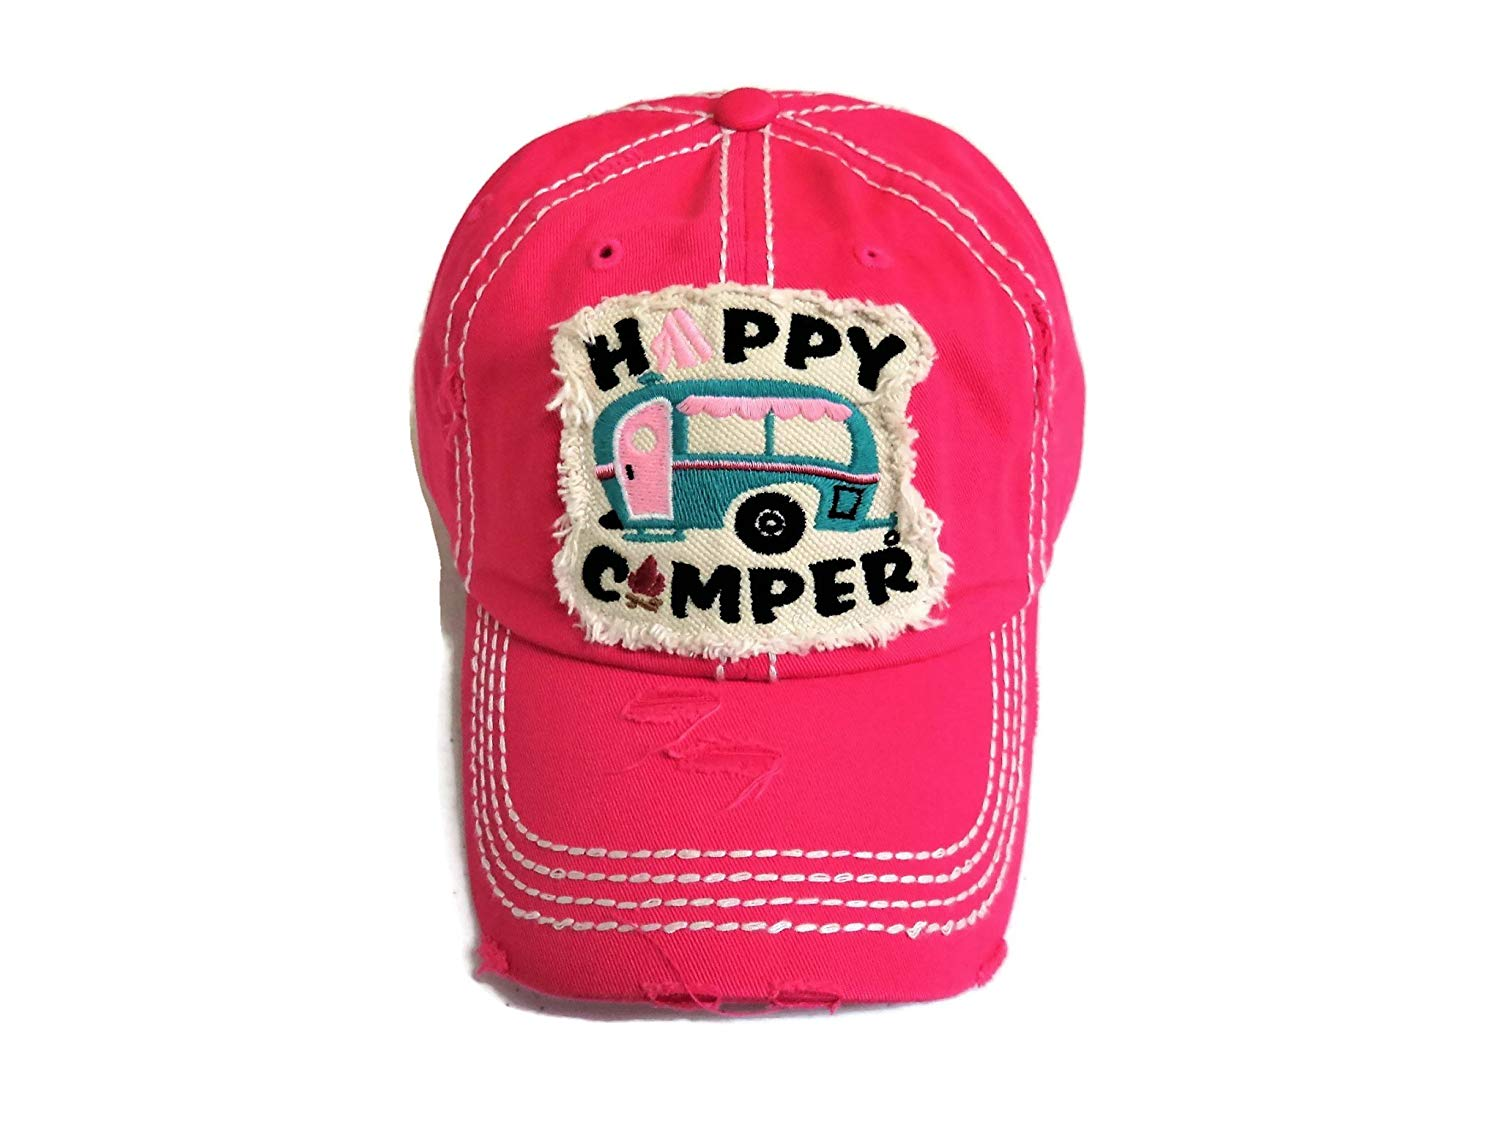 71b64f7ecd9c4 Get Quotations · Spirit Caps Embroidered Happy Camper Frayed Patch Washed  Fuchsia Baseball Cap